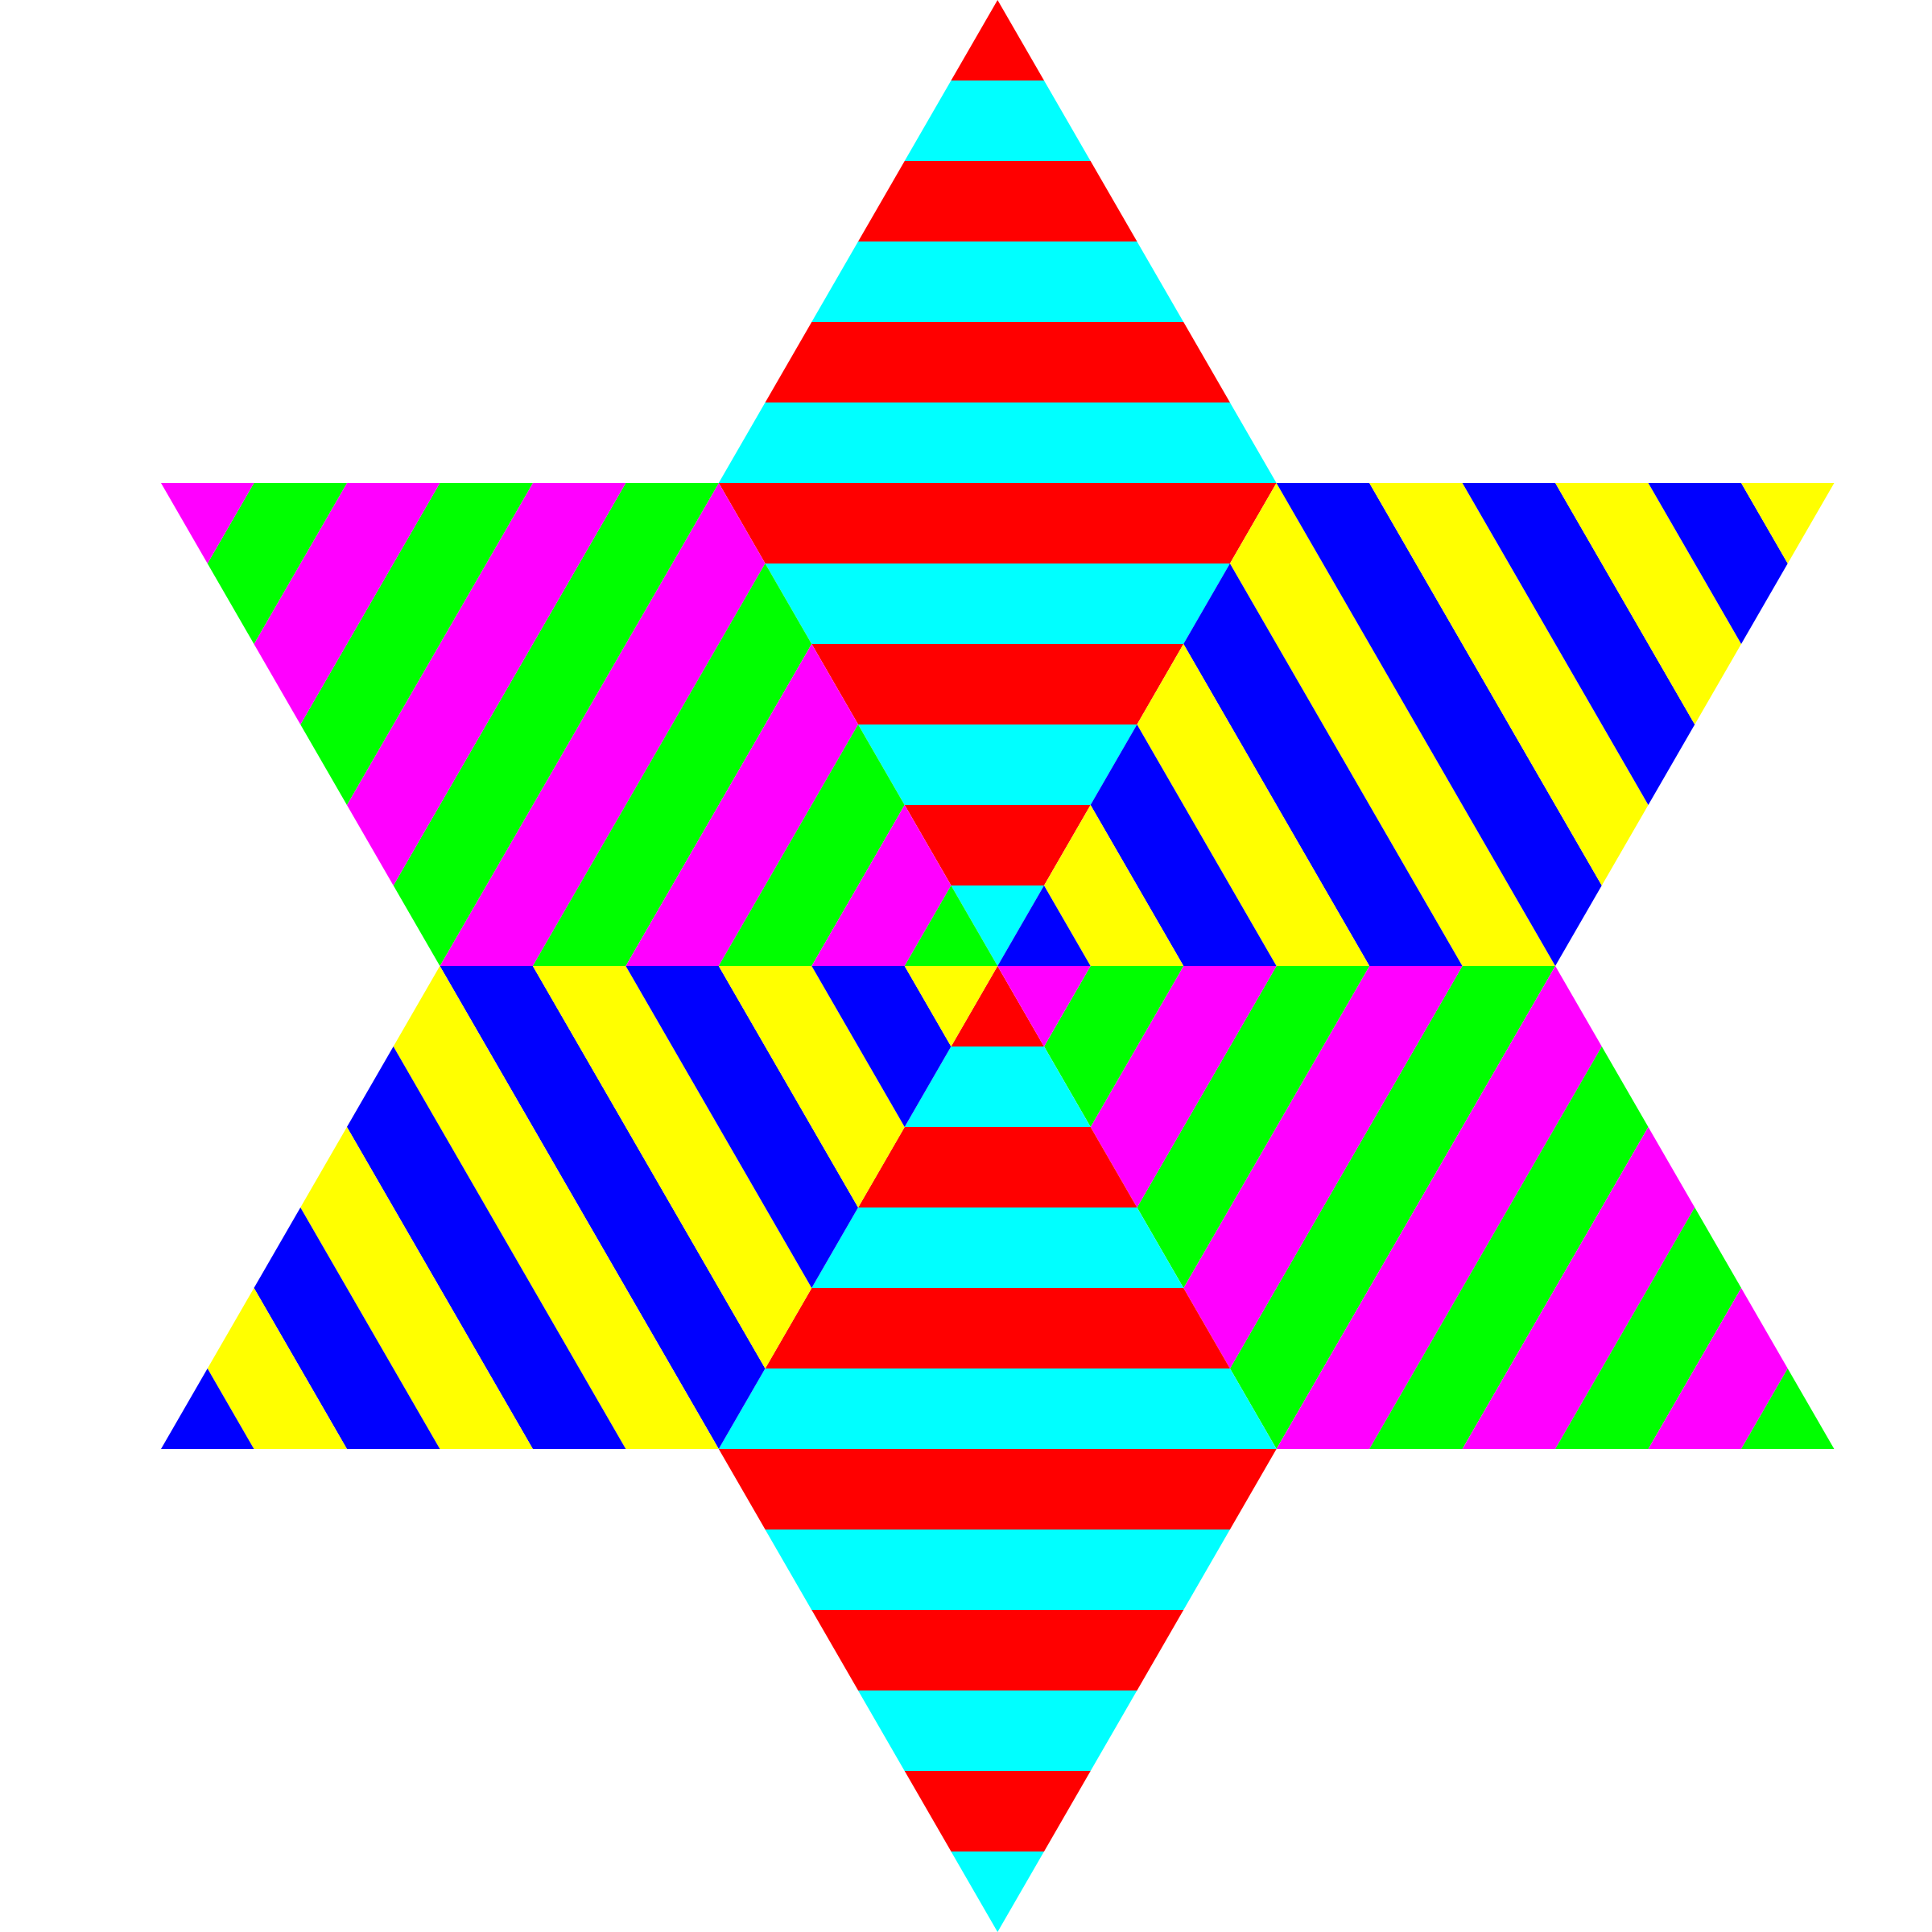 Triangle stripes png. Clipart hexagram big image